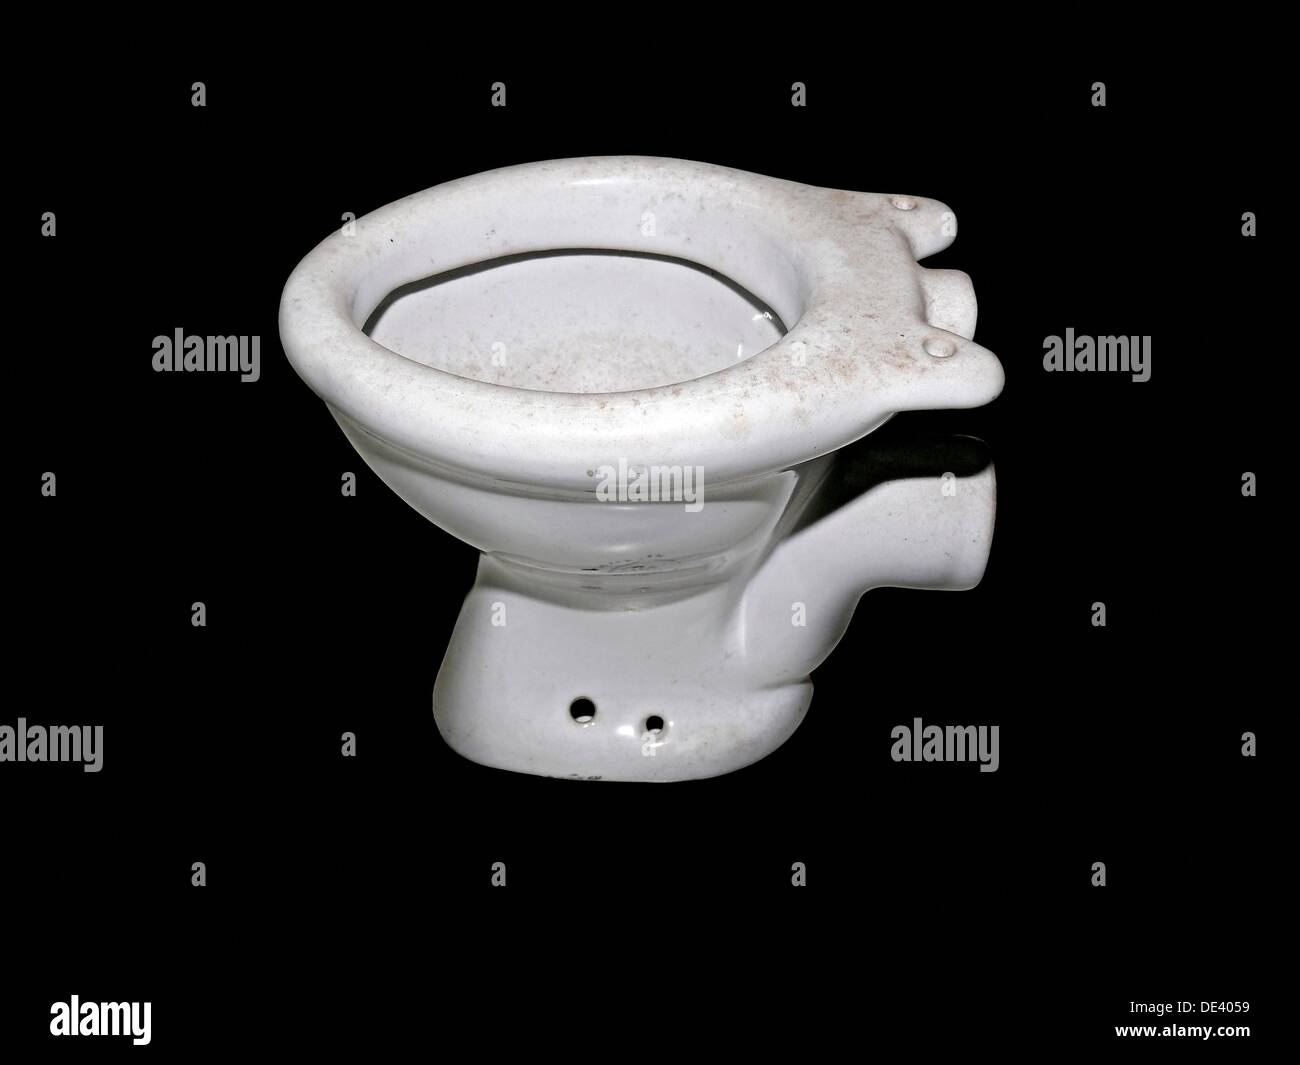 Model of a toilet bowl stock photo: 60324245 alamy